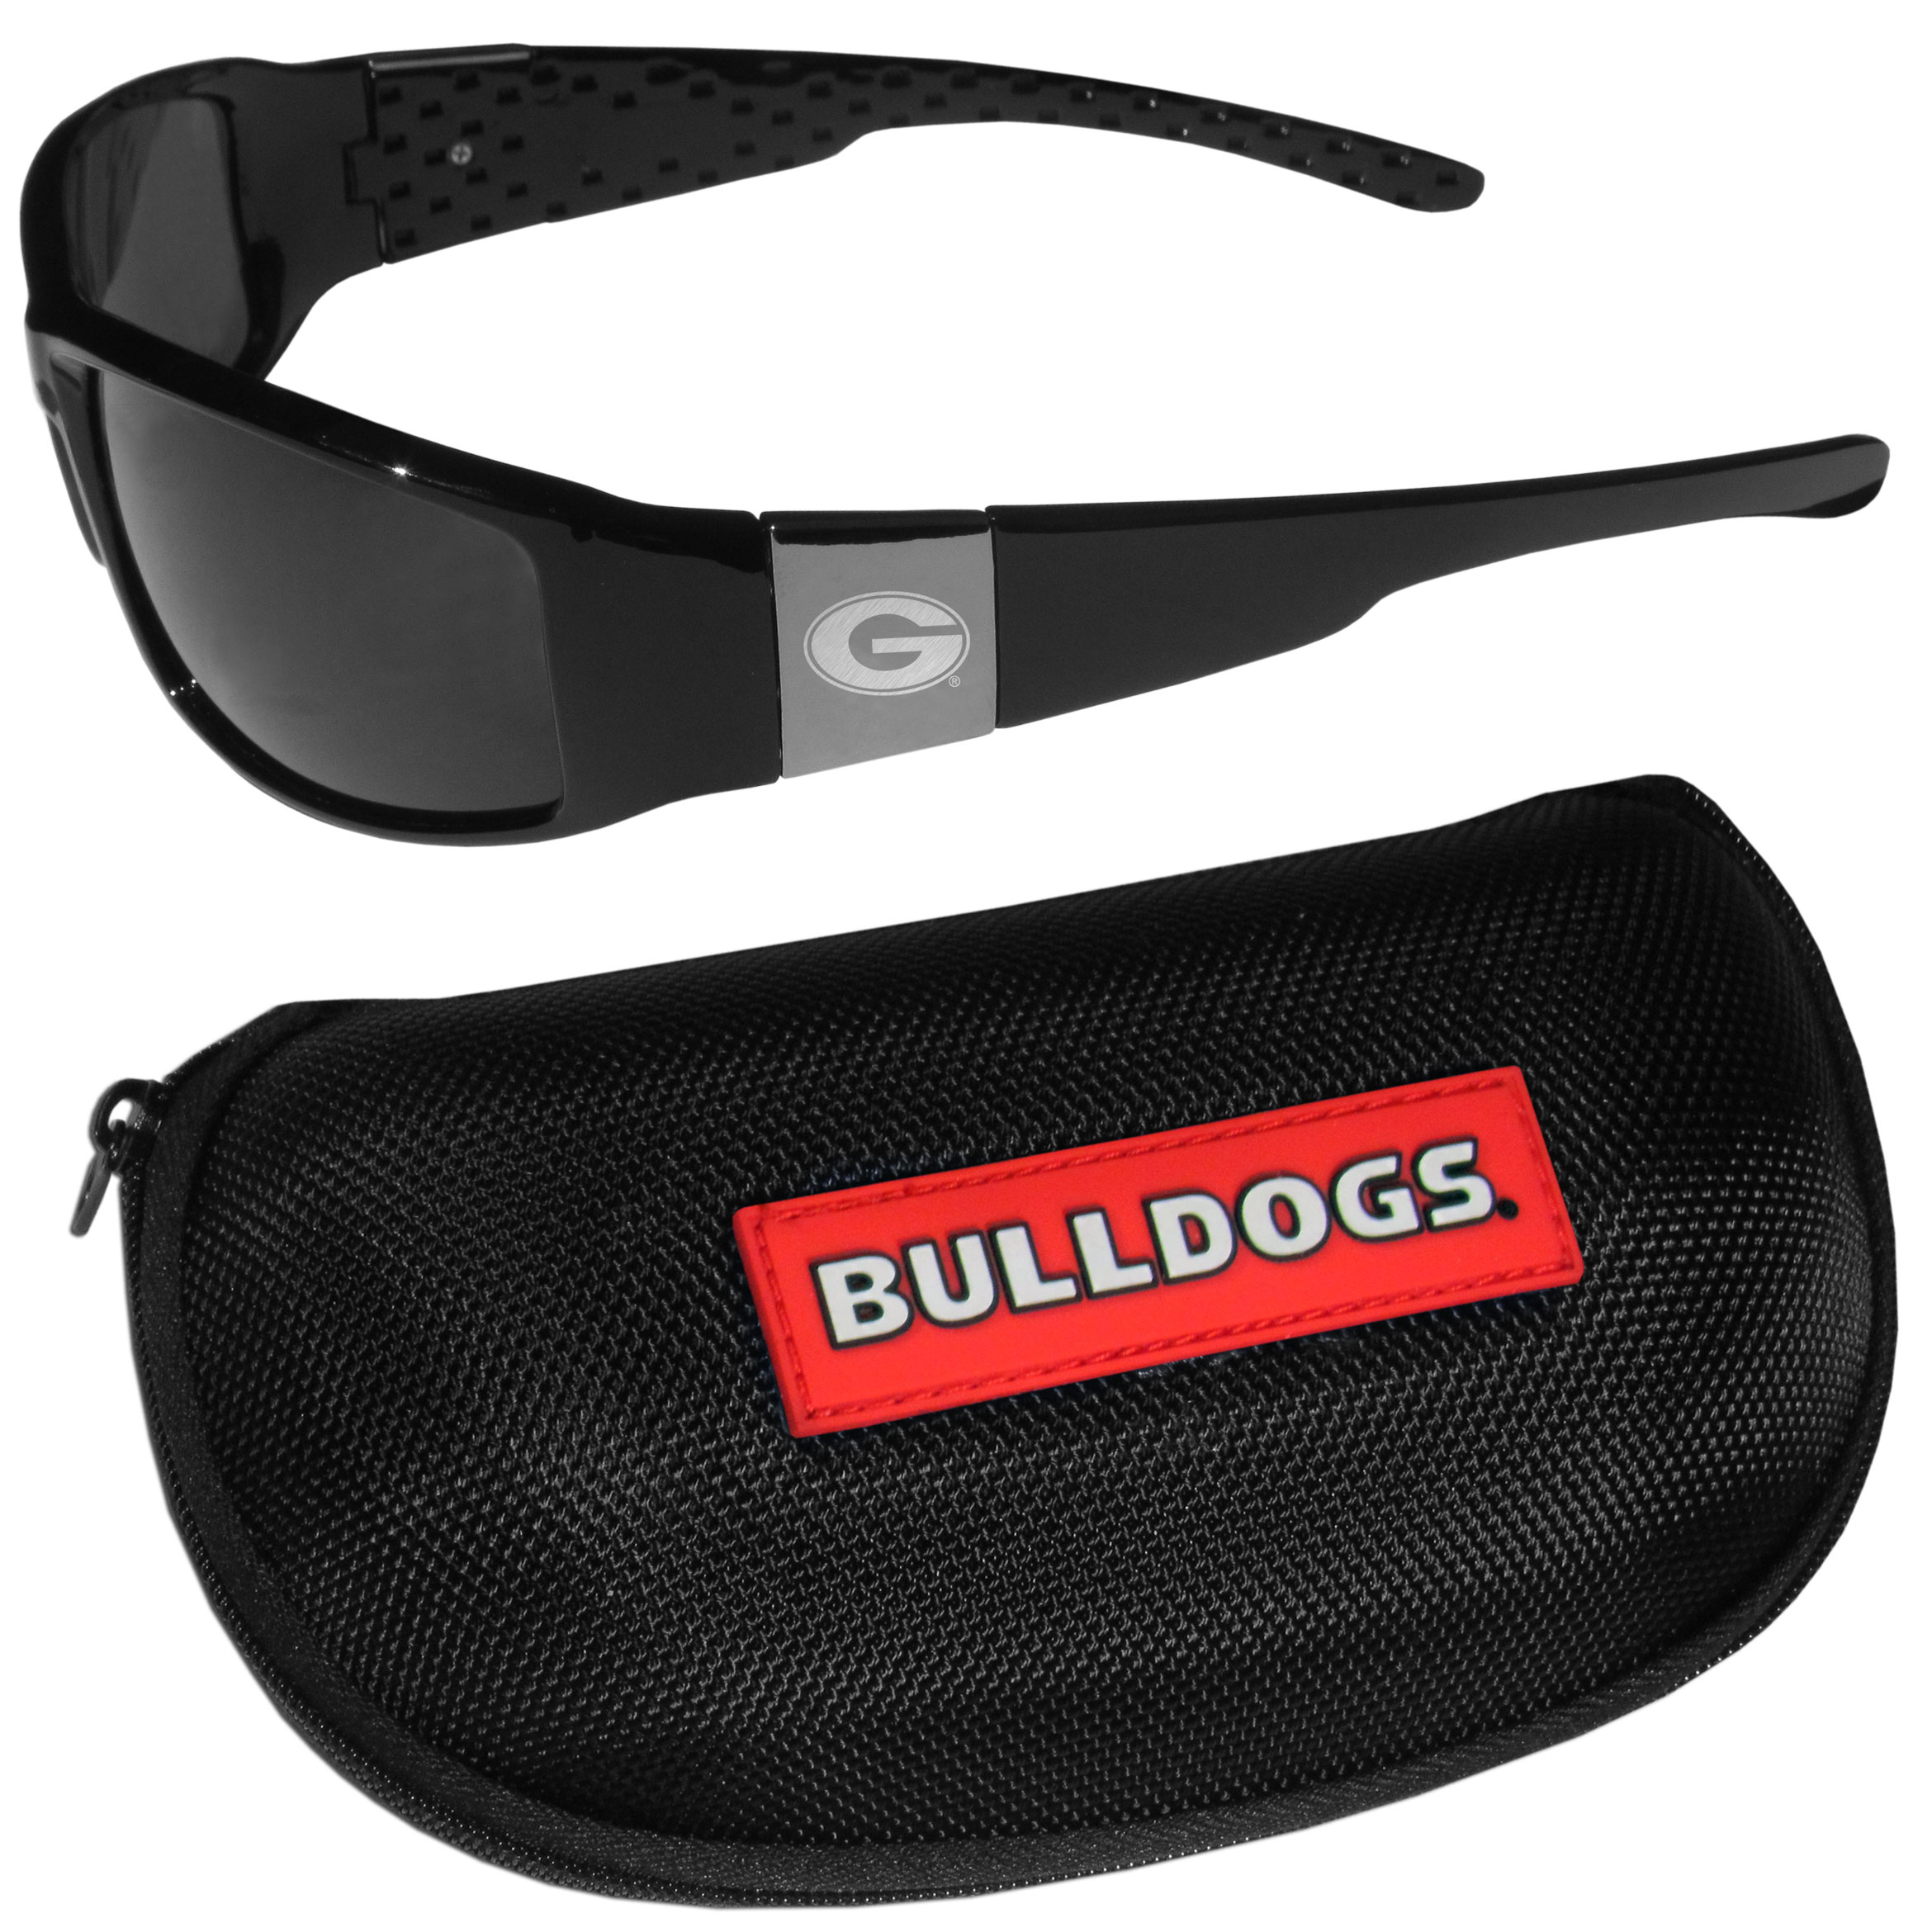 Georgia Bulldogs Chrome Wrap Sunglasses and Zippered Carrying Case - These designer inspired frames have a sleek look in all black with high-polish chrome Georgia Bulldogs shields on each arm with an etched logo. The shades are perfect any outdoor activity like; golfing, driving, hiking, fishing or cheering on the team at a tailgating event or an at home game day BBQ with a lens rating of 100% UVA/UVB for maximum UV protection. The high-quality frames are as durable as they are fashionable and with their classic look they are perfect fan accessory that can be worn everyday for every occasion. The shades come with a zippered hard shell case to keep your sunglasses safe.